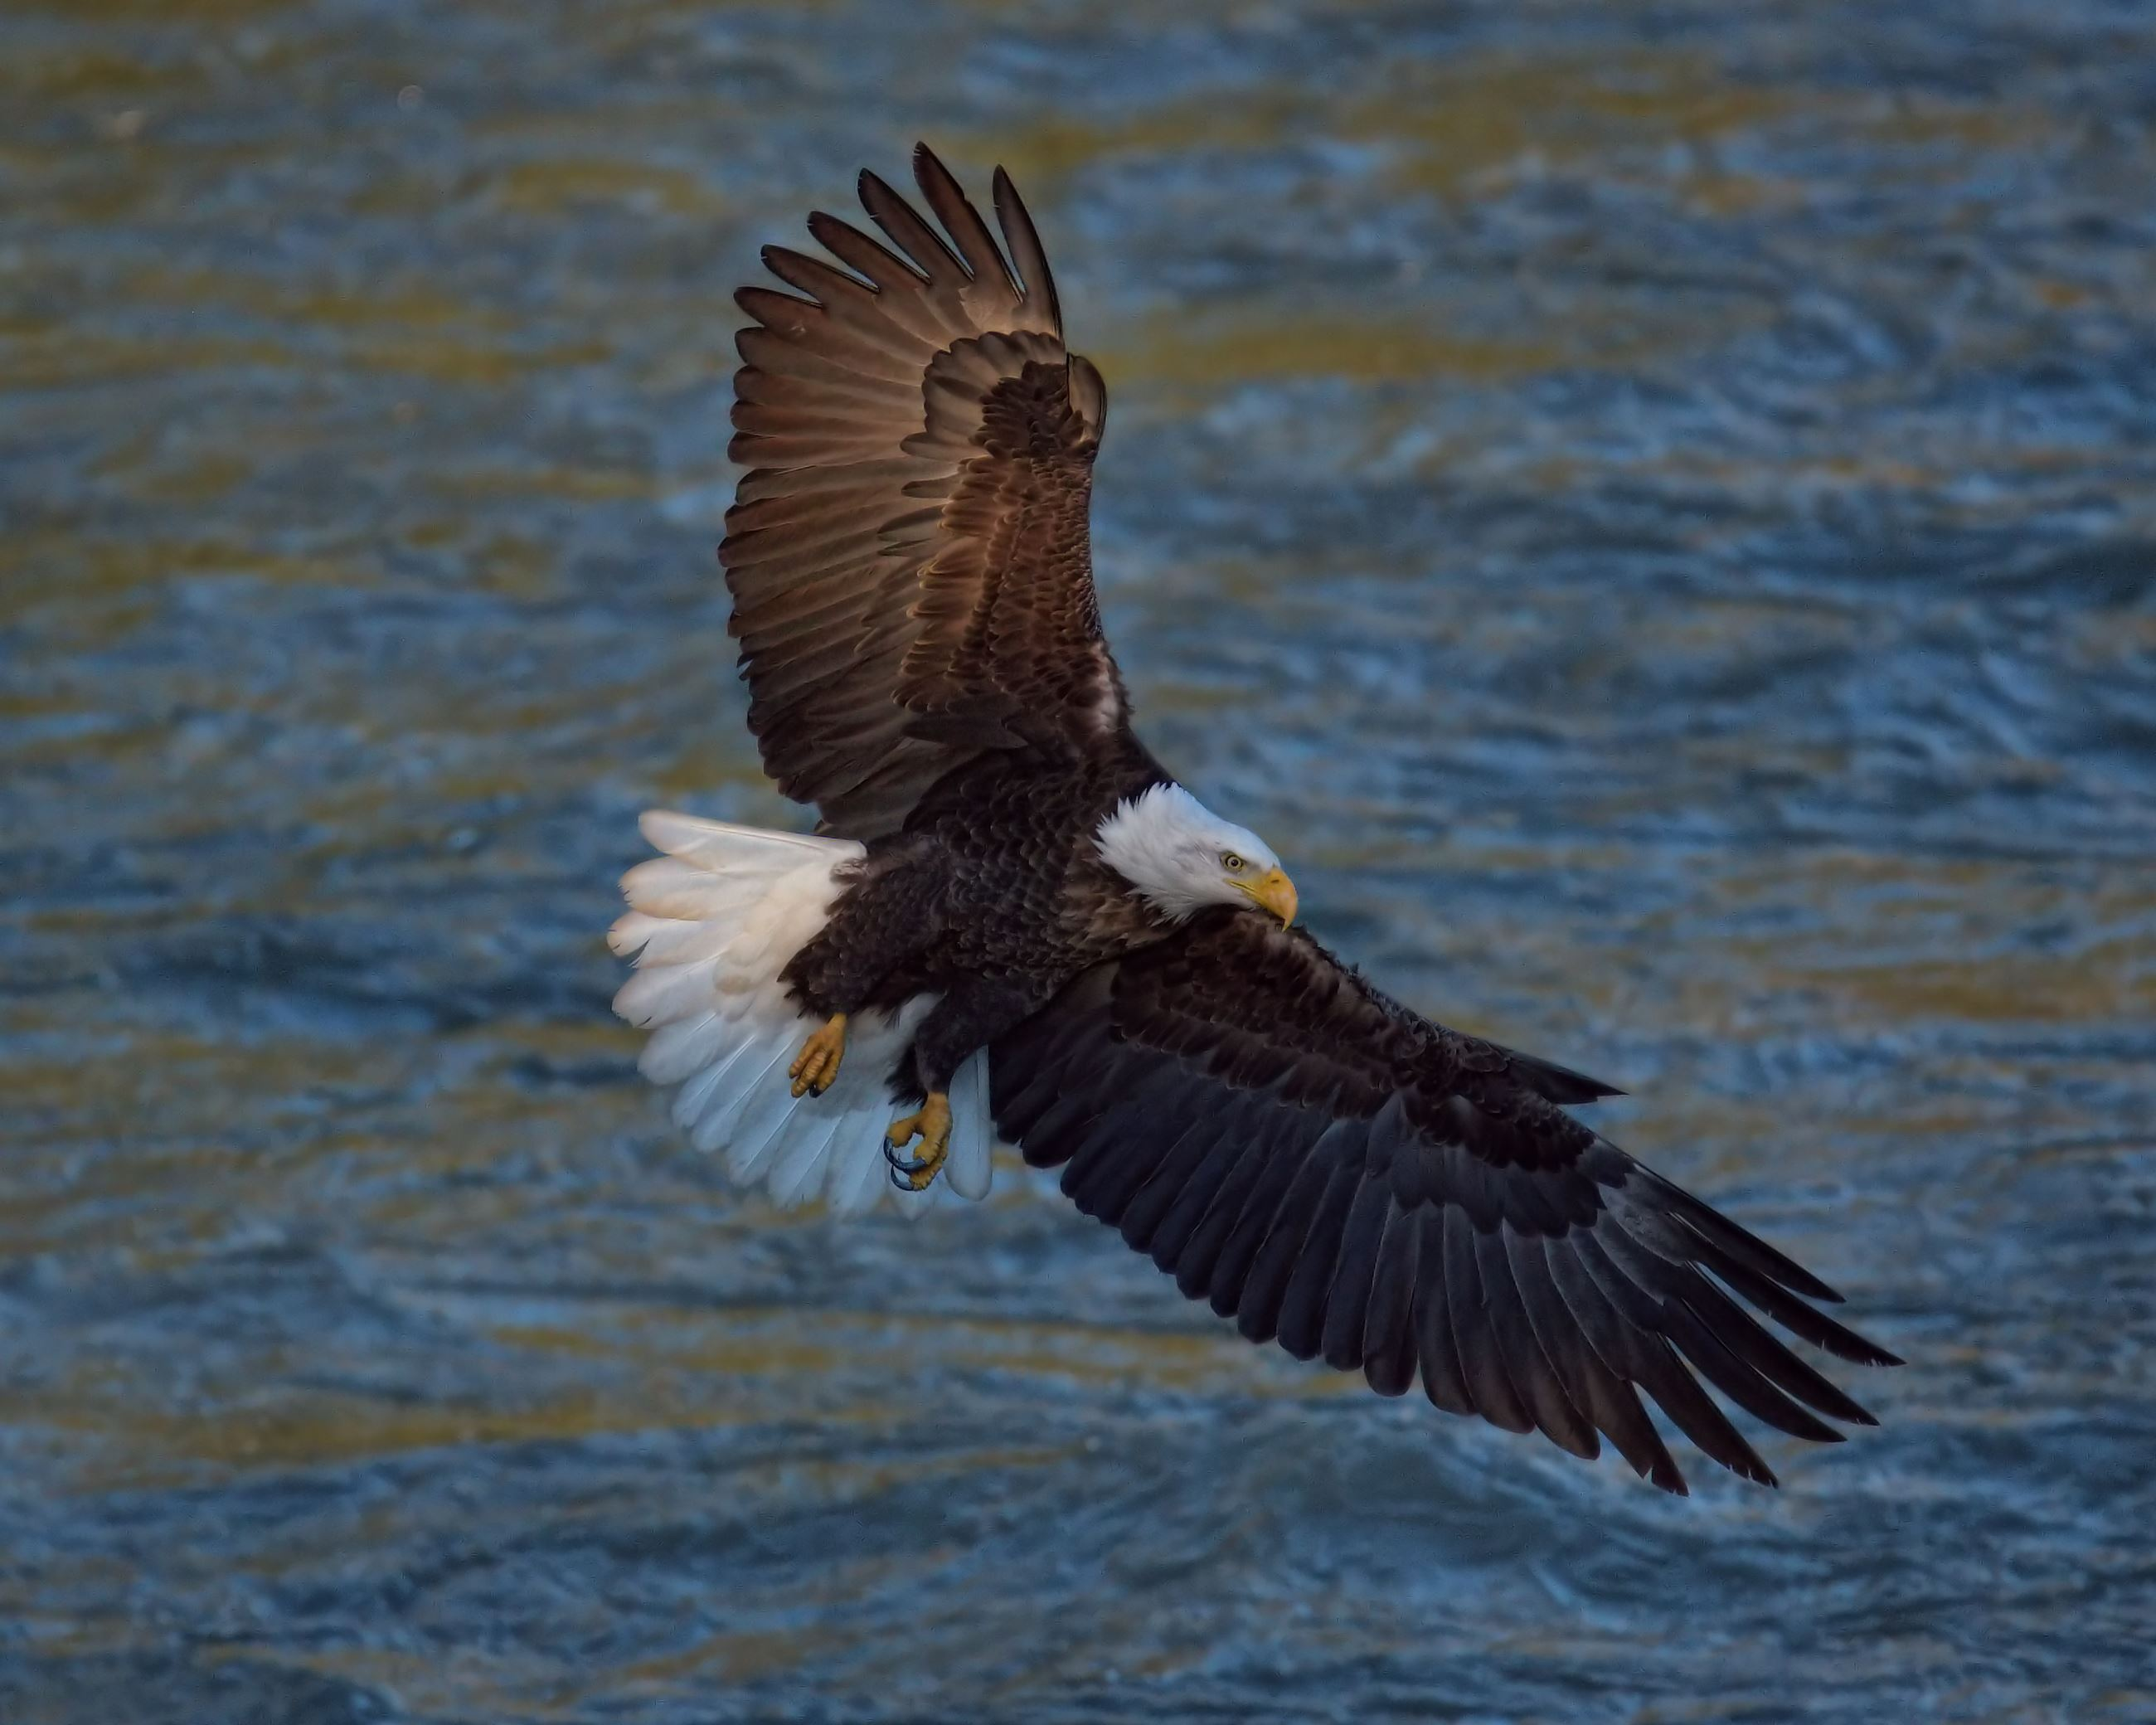 2018 eagle photo winner Debra Hoskins